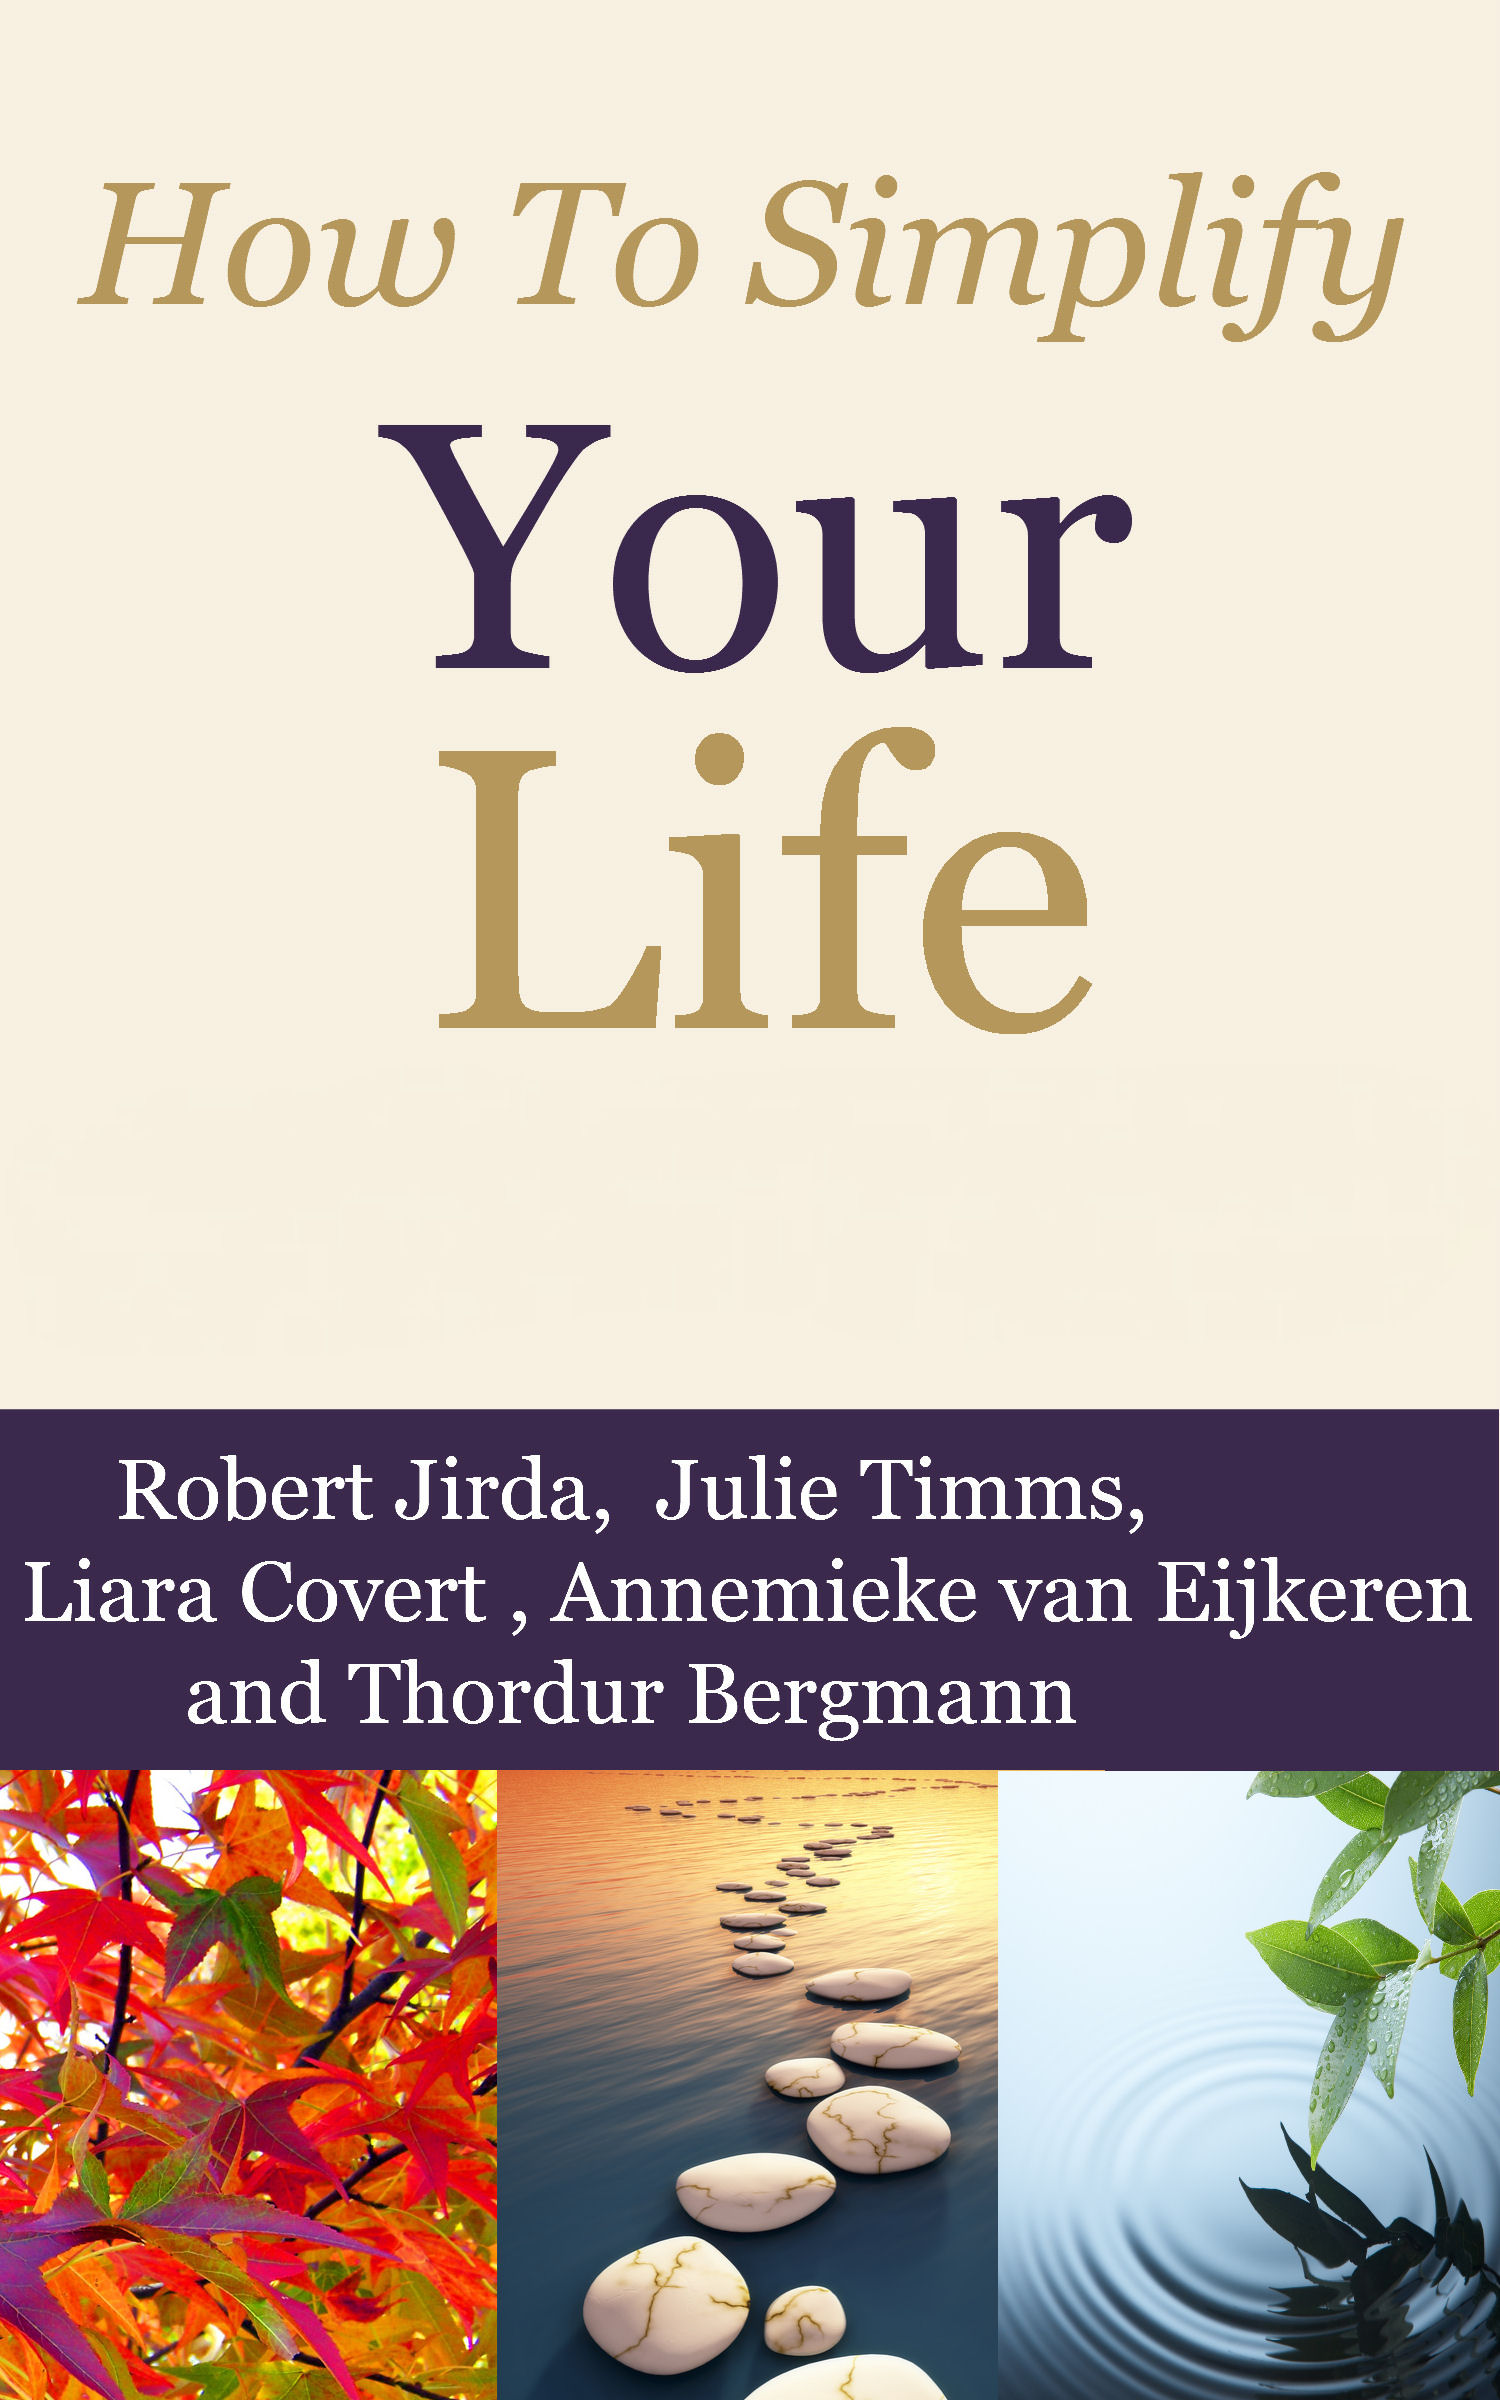 How To Simplify Your Life   Inspirational Quotes, Books U0026 Articles To  Empower You